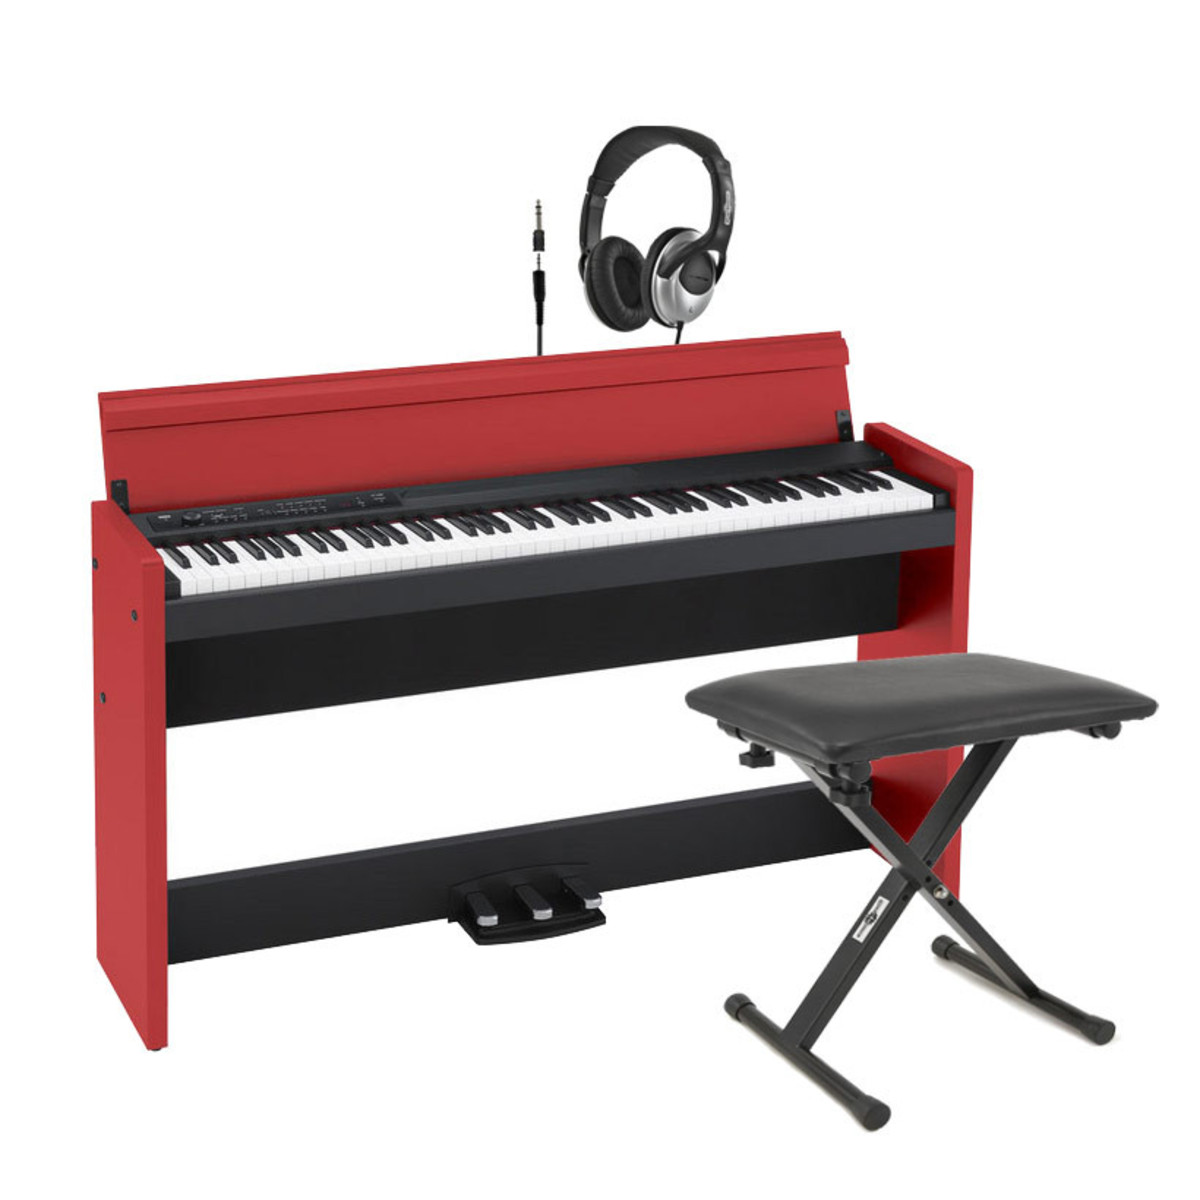 disc korg lp 380 digital piano black and red free stool at gear4music. Black Bedroom Furniture Sets. Home Design Ideas